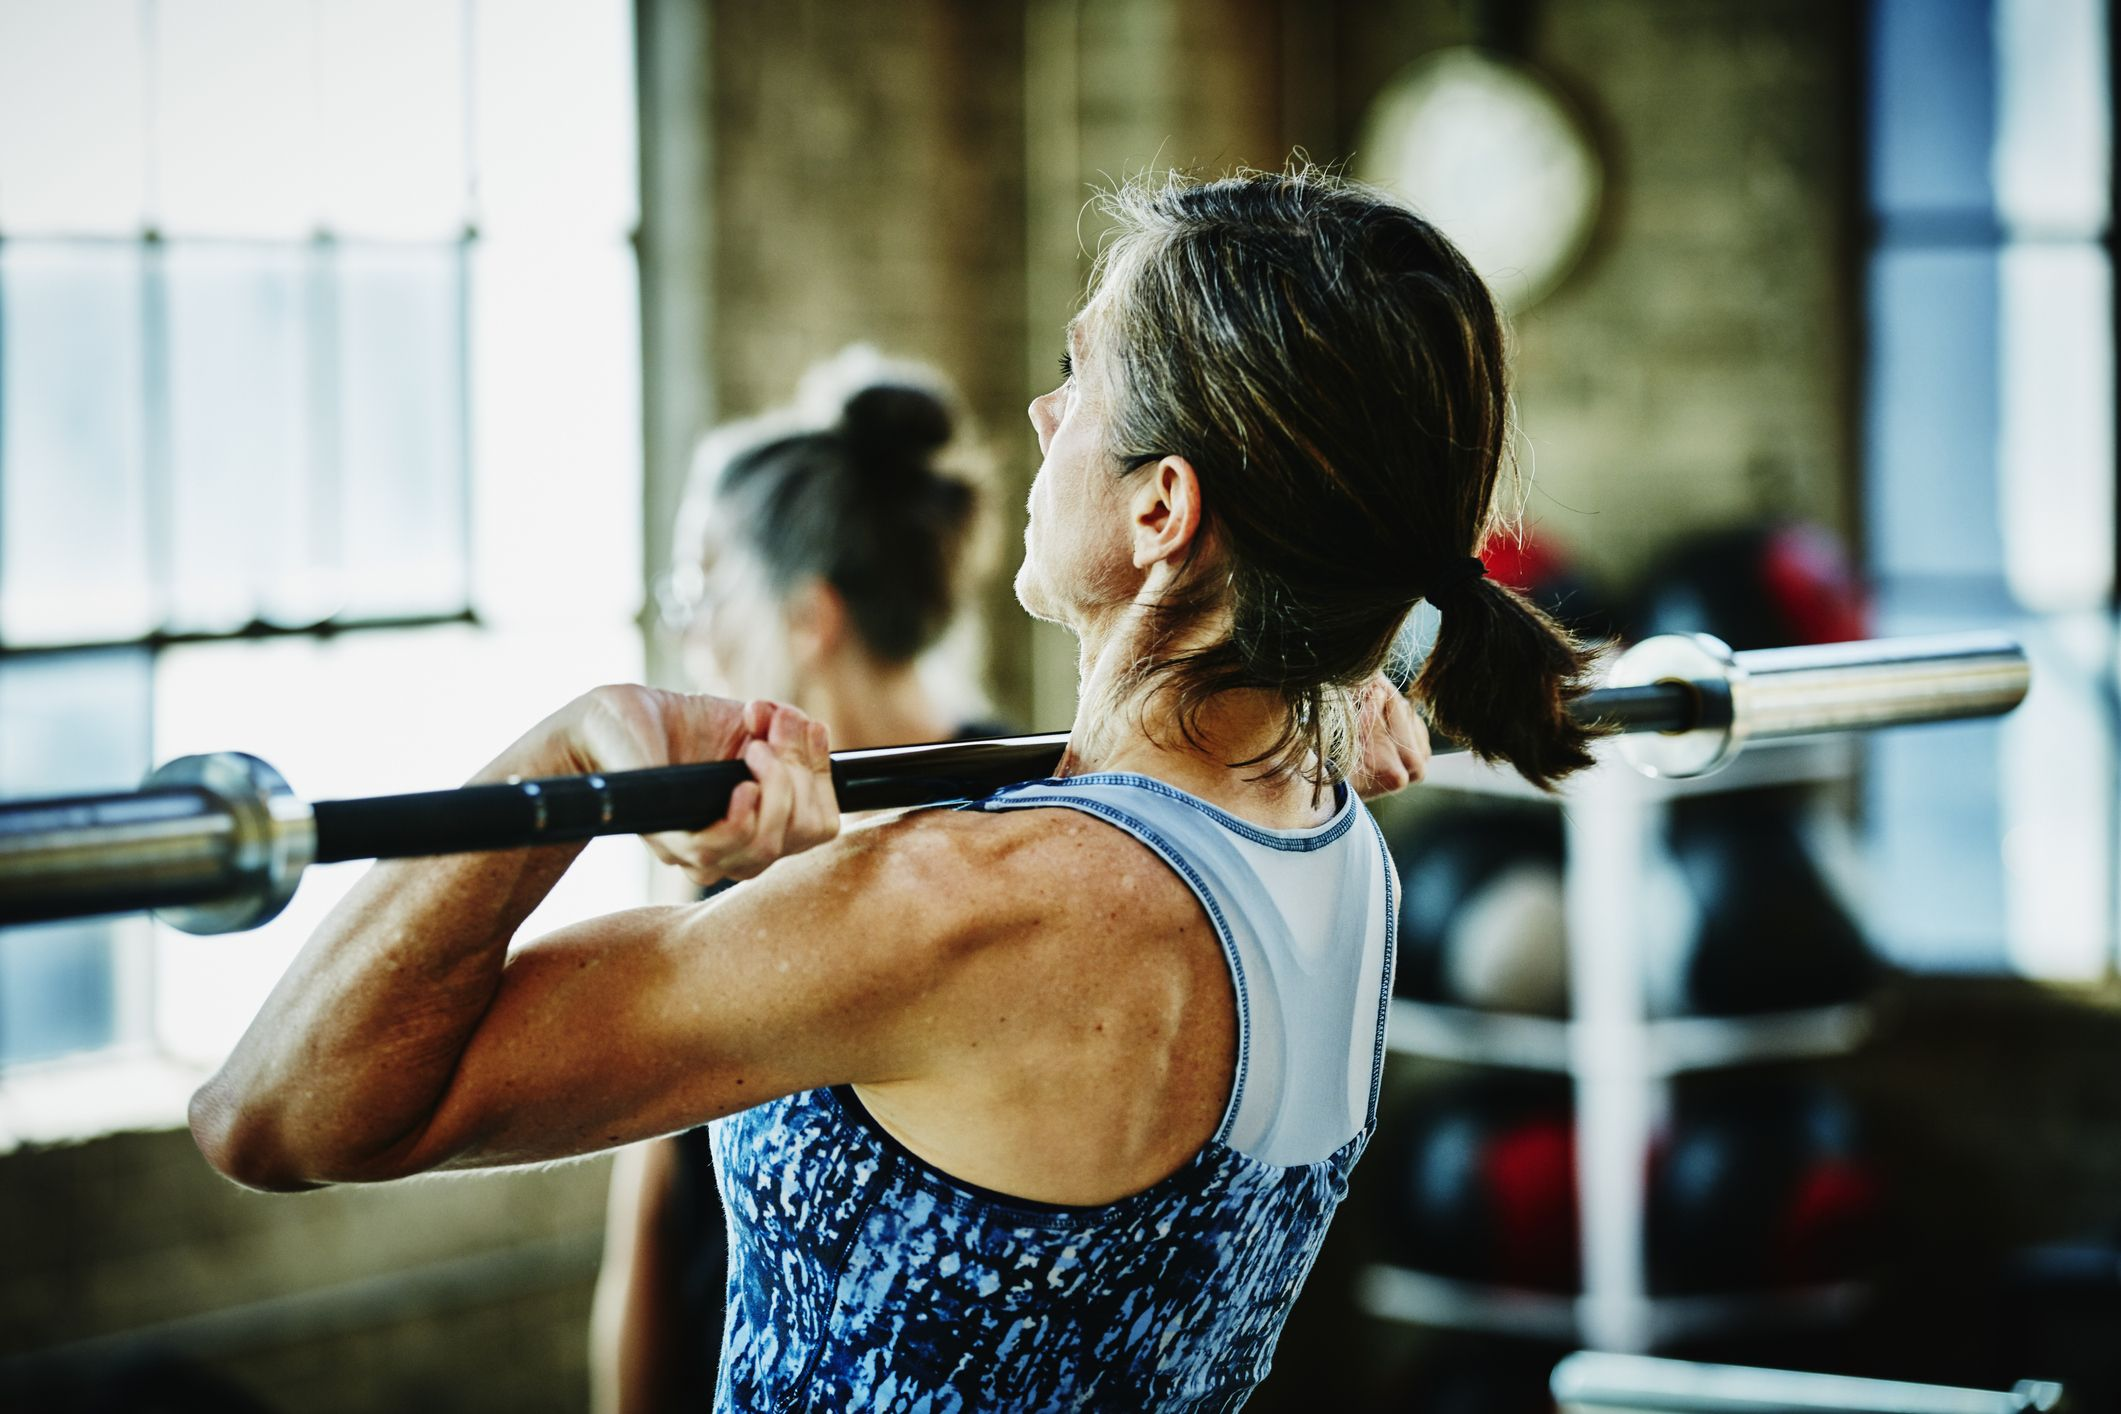 'The big squeeze' workout builds gym-ready muscle with light weights